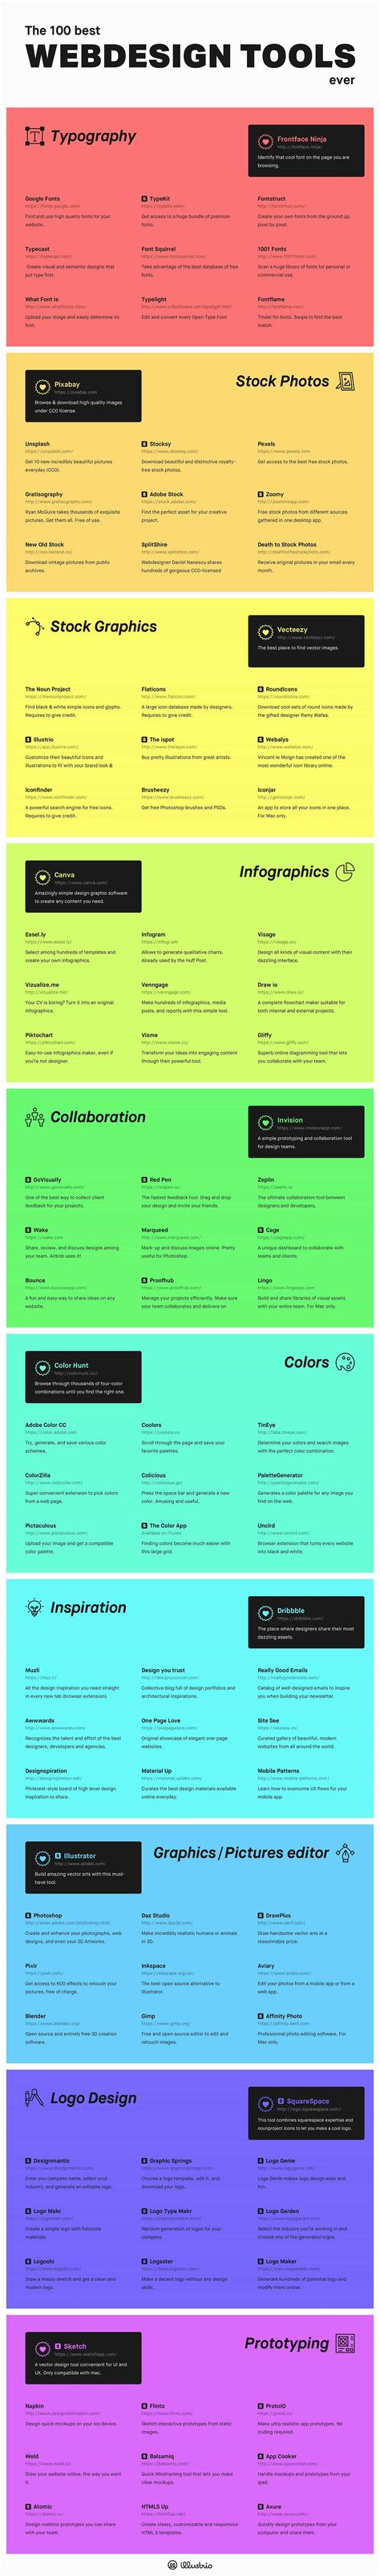 best design tools the 100 best web design tools infographic